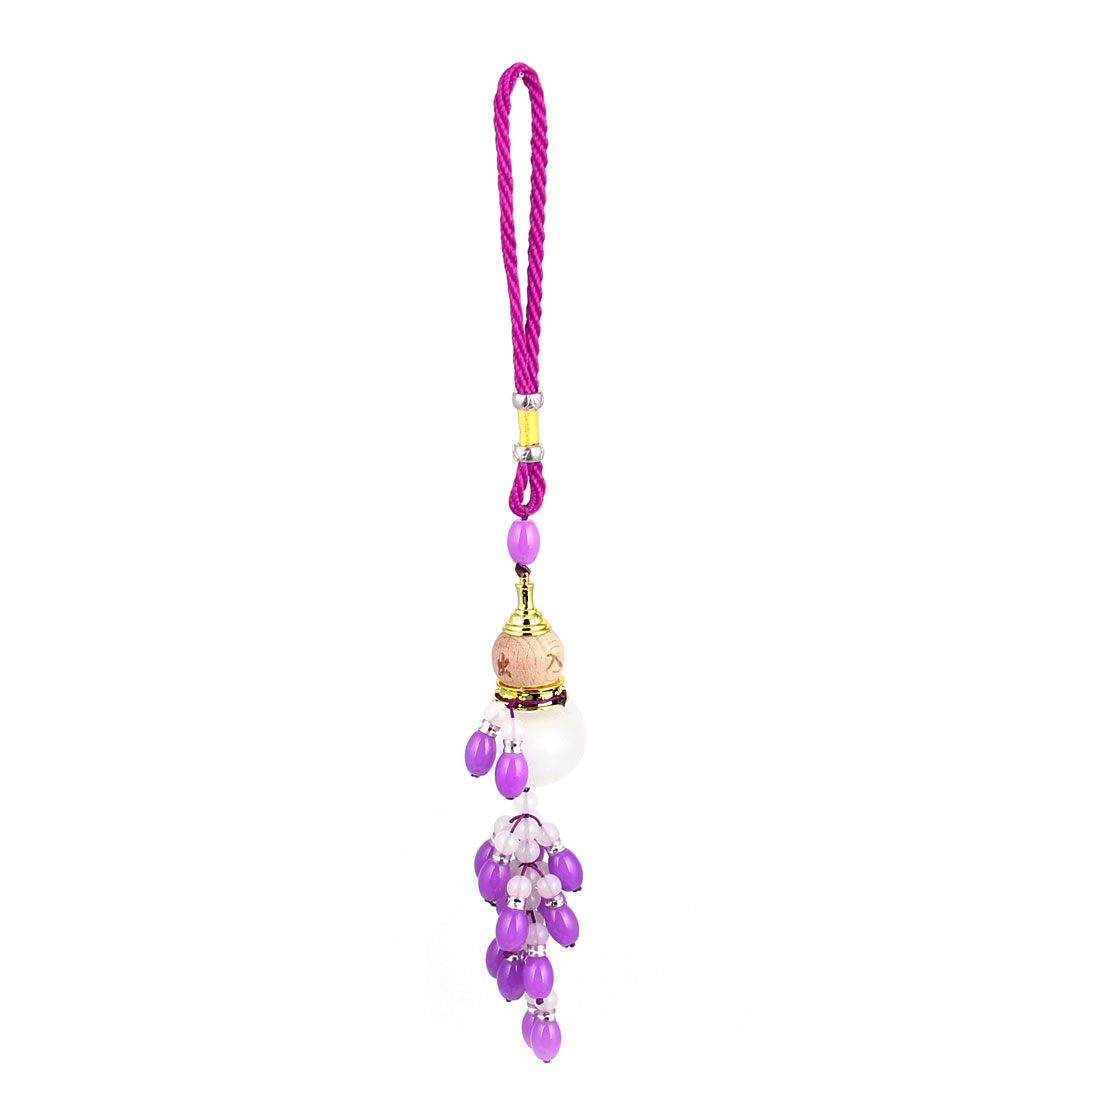 Nylon Stripe Purple Plastic Beads Linked Calabash Pendant Auto Hanging Ornament